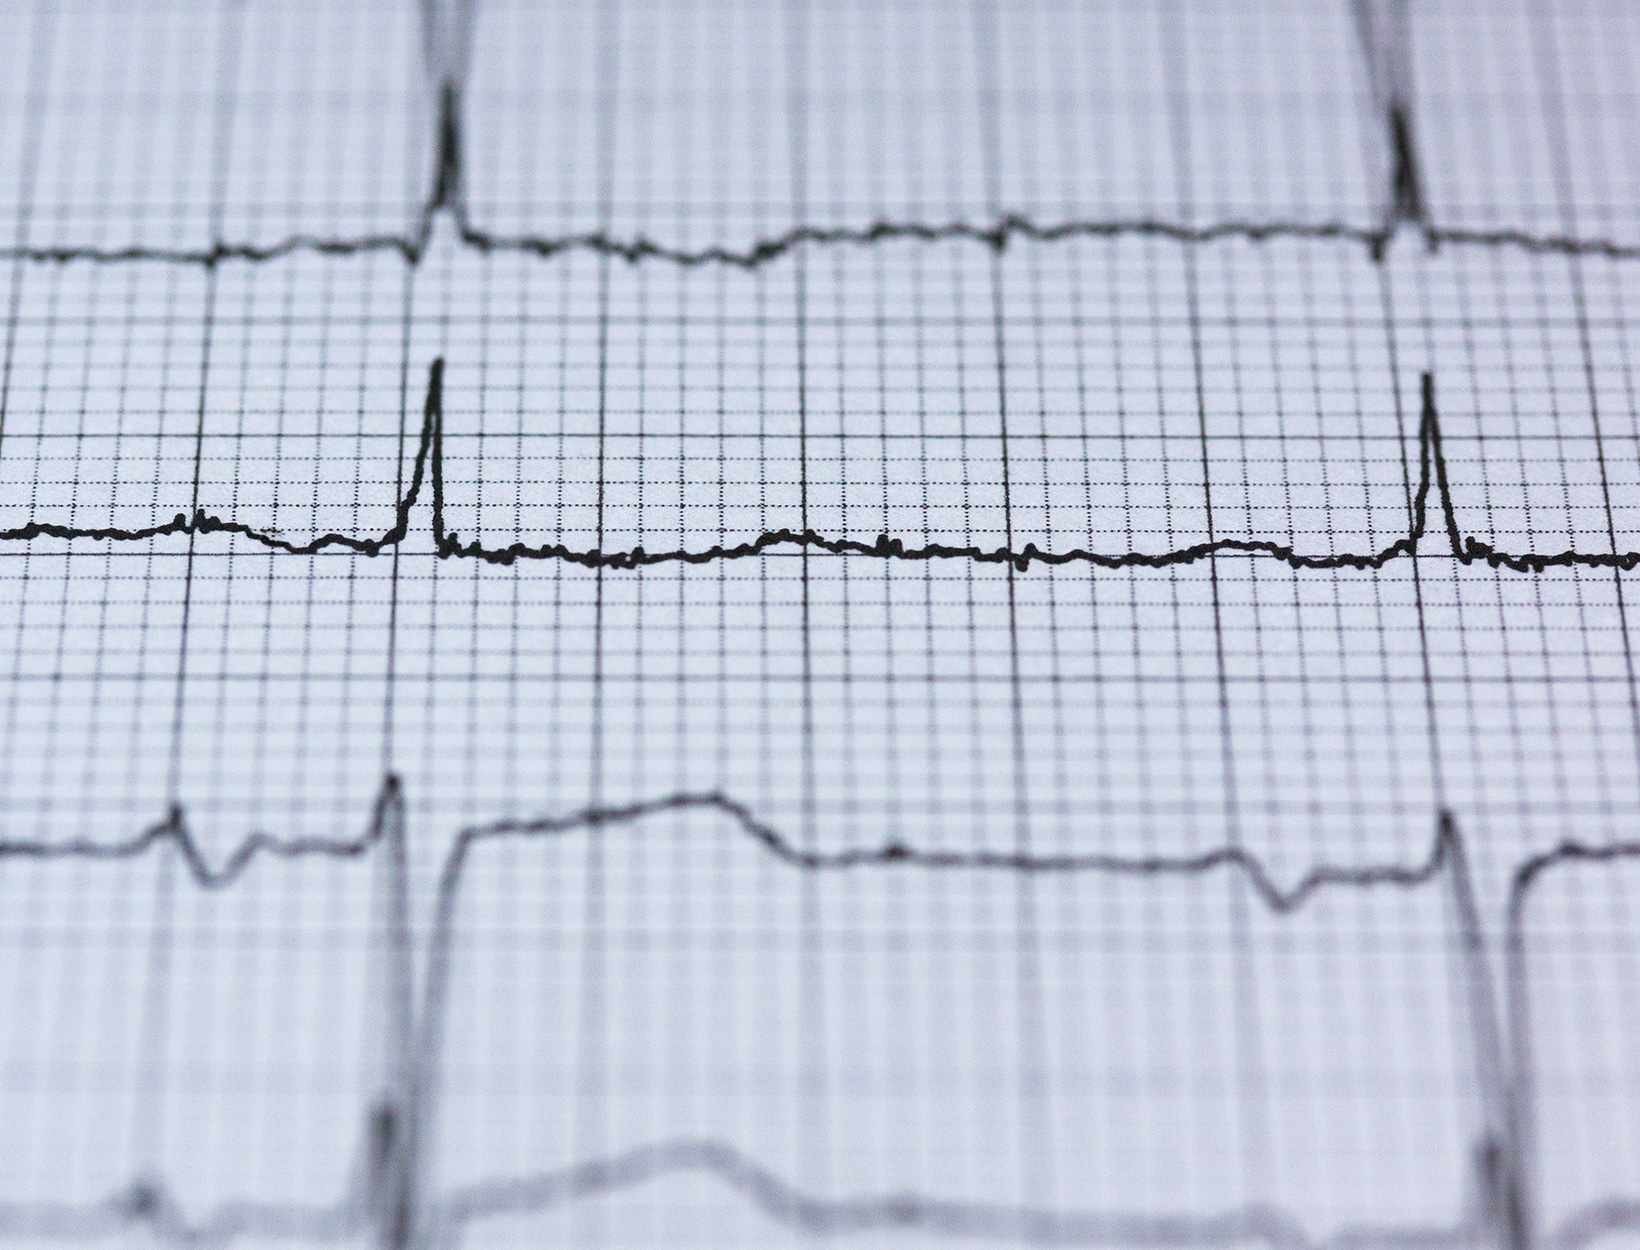 A 'Game Changer' for Patients With Irregular Heart Rhythm